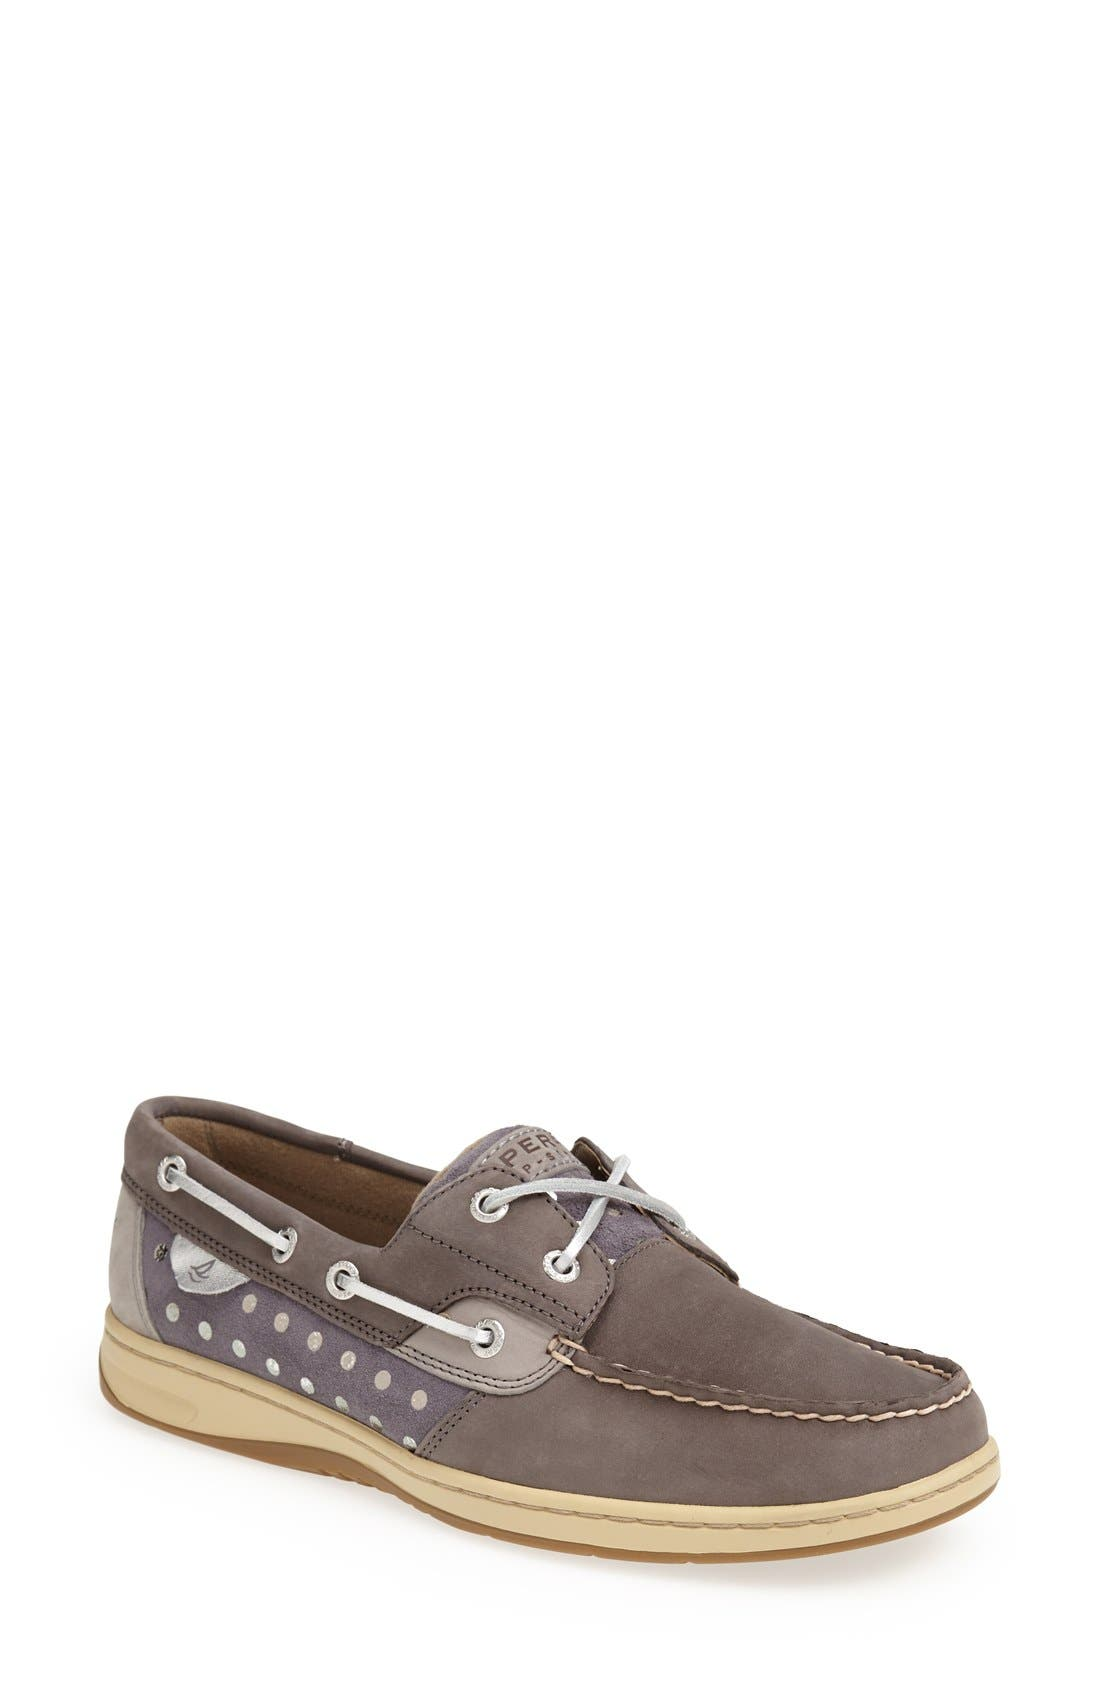 Alternate Image 1 Selected - Sperry Top-Sider® 'Bluefish' Boat Shoe (Women)